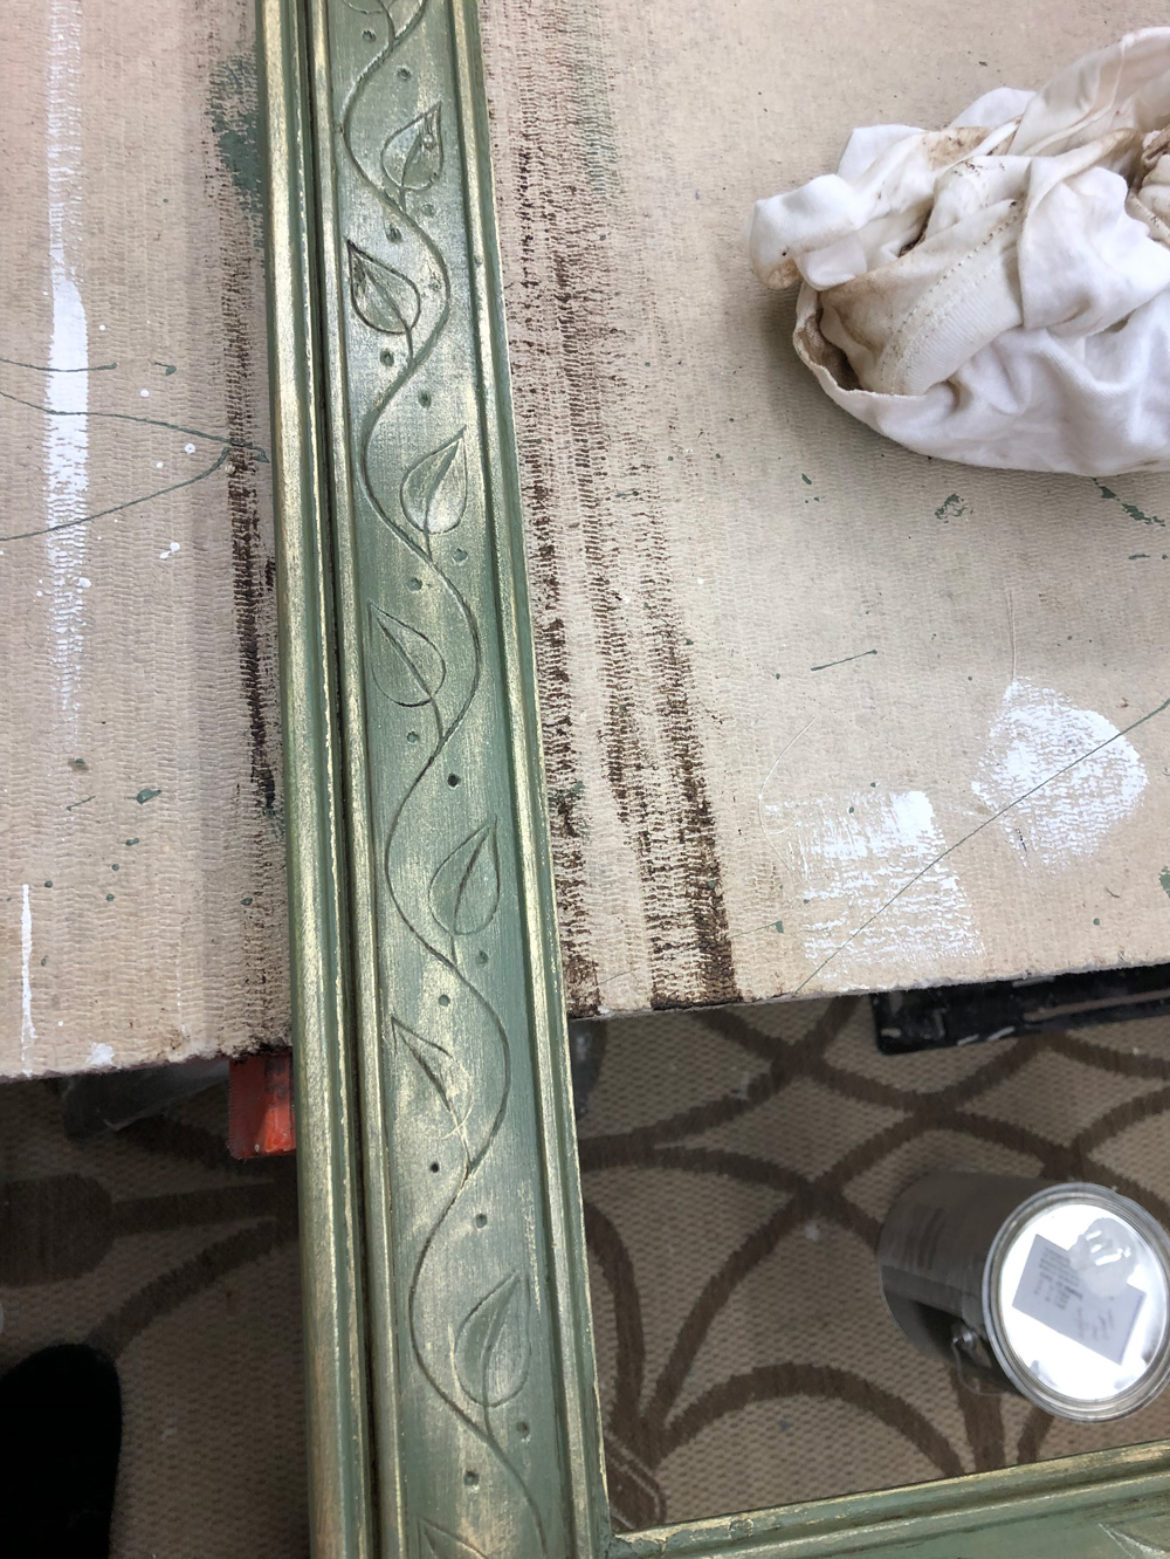 Molding painted green with wax and gold gilding